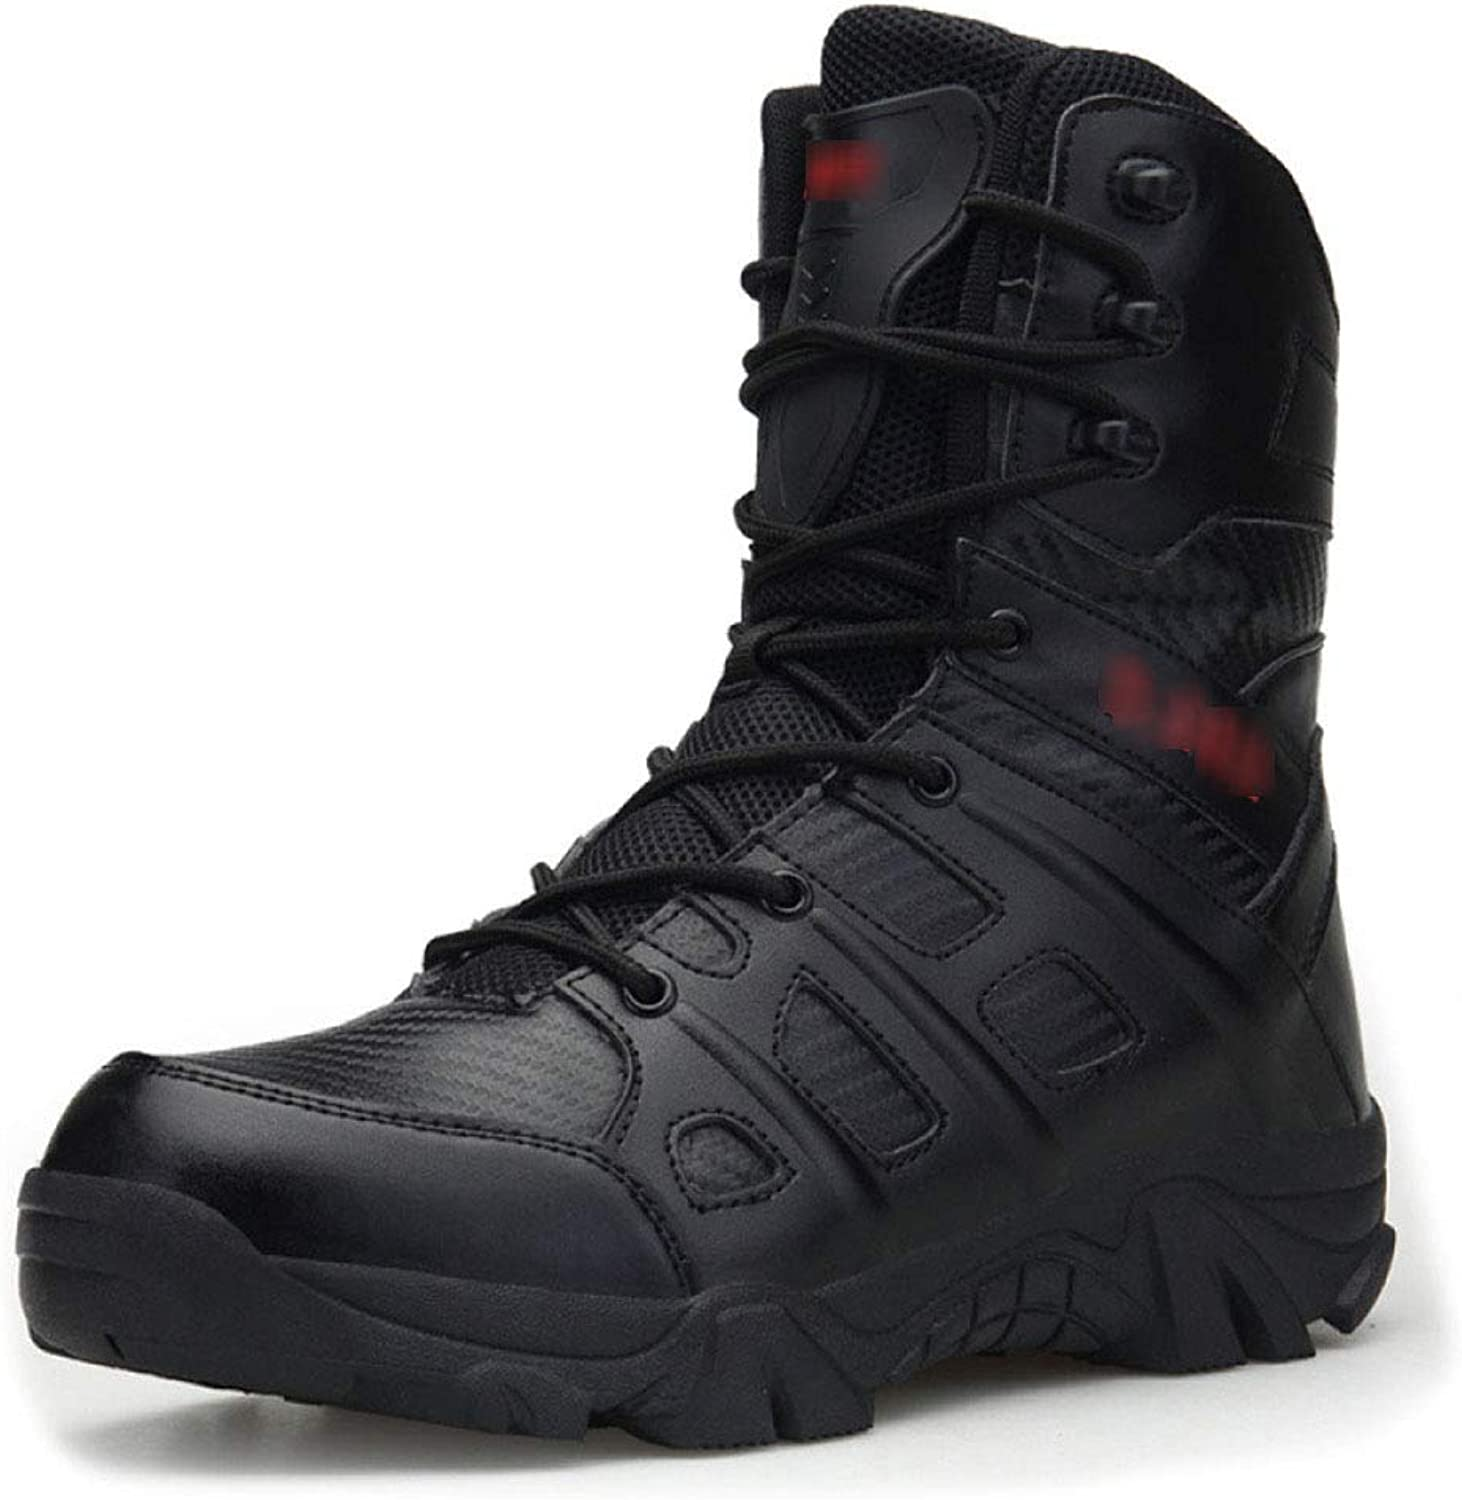 QIKAI Tactical Boots Zip Fashion Leather Comfortable Non-Slip Wear-Resistant Shock-Absorbing Combat Mountaineering Tactical Boots